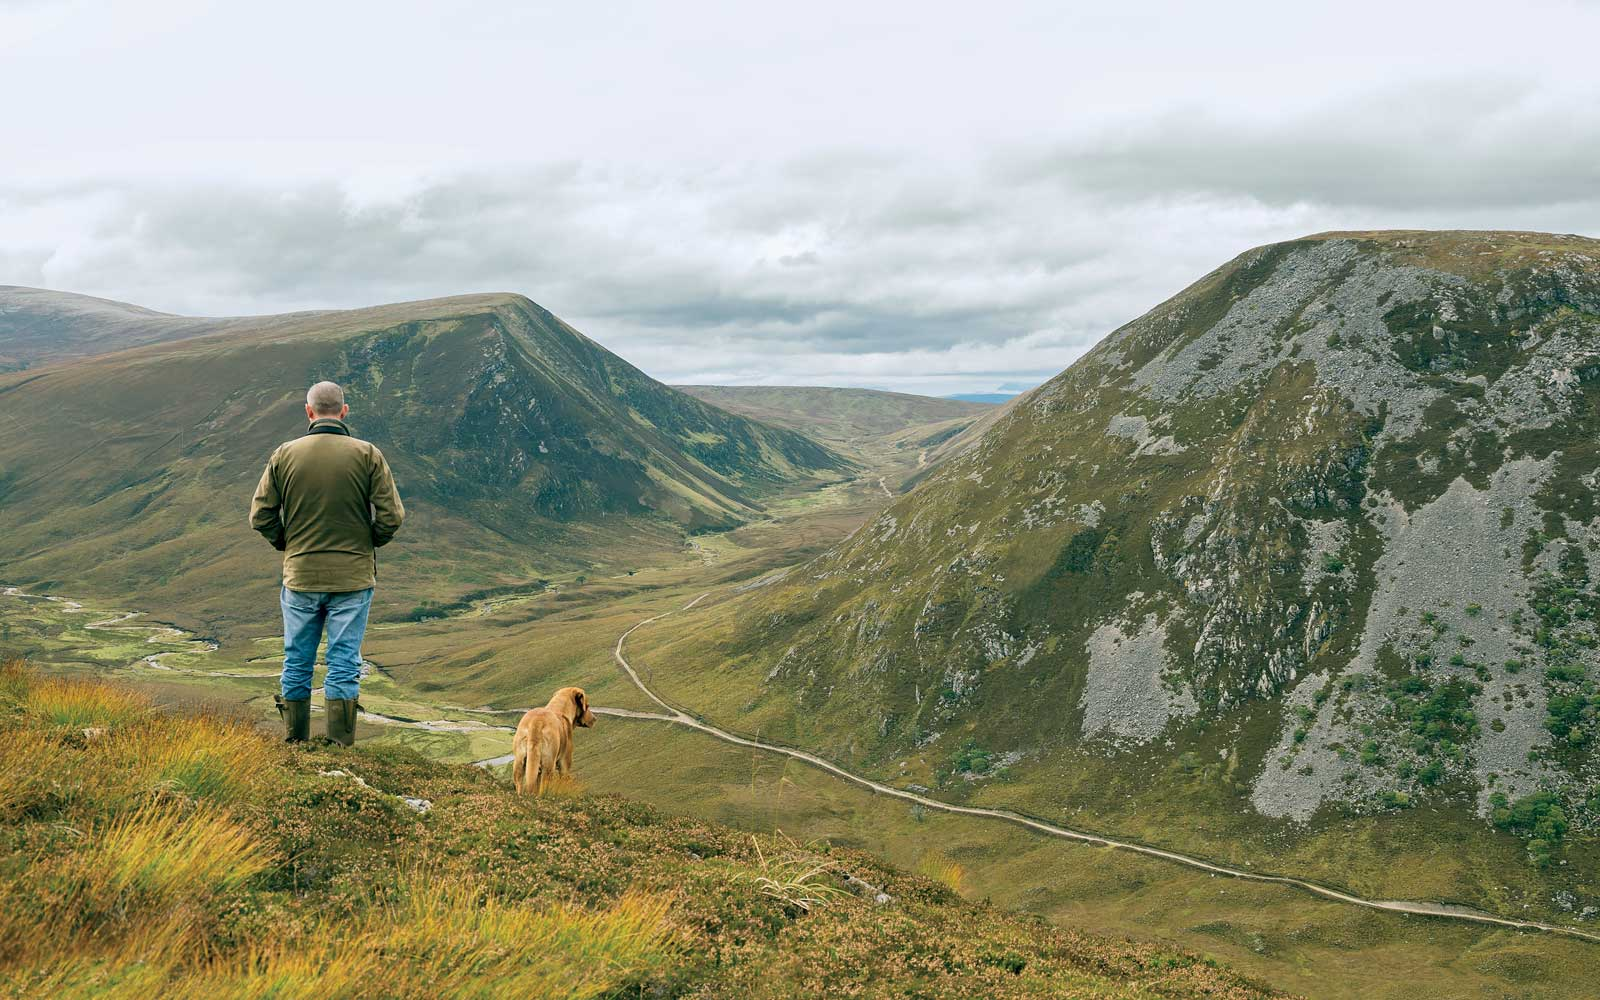 Alladale lodge and wilderness reserve in the Scottish Highlands